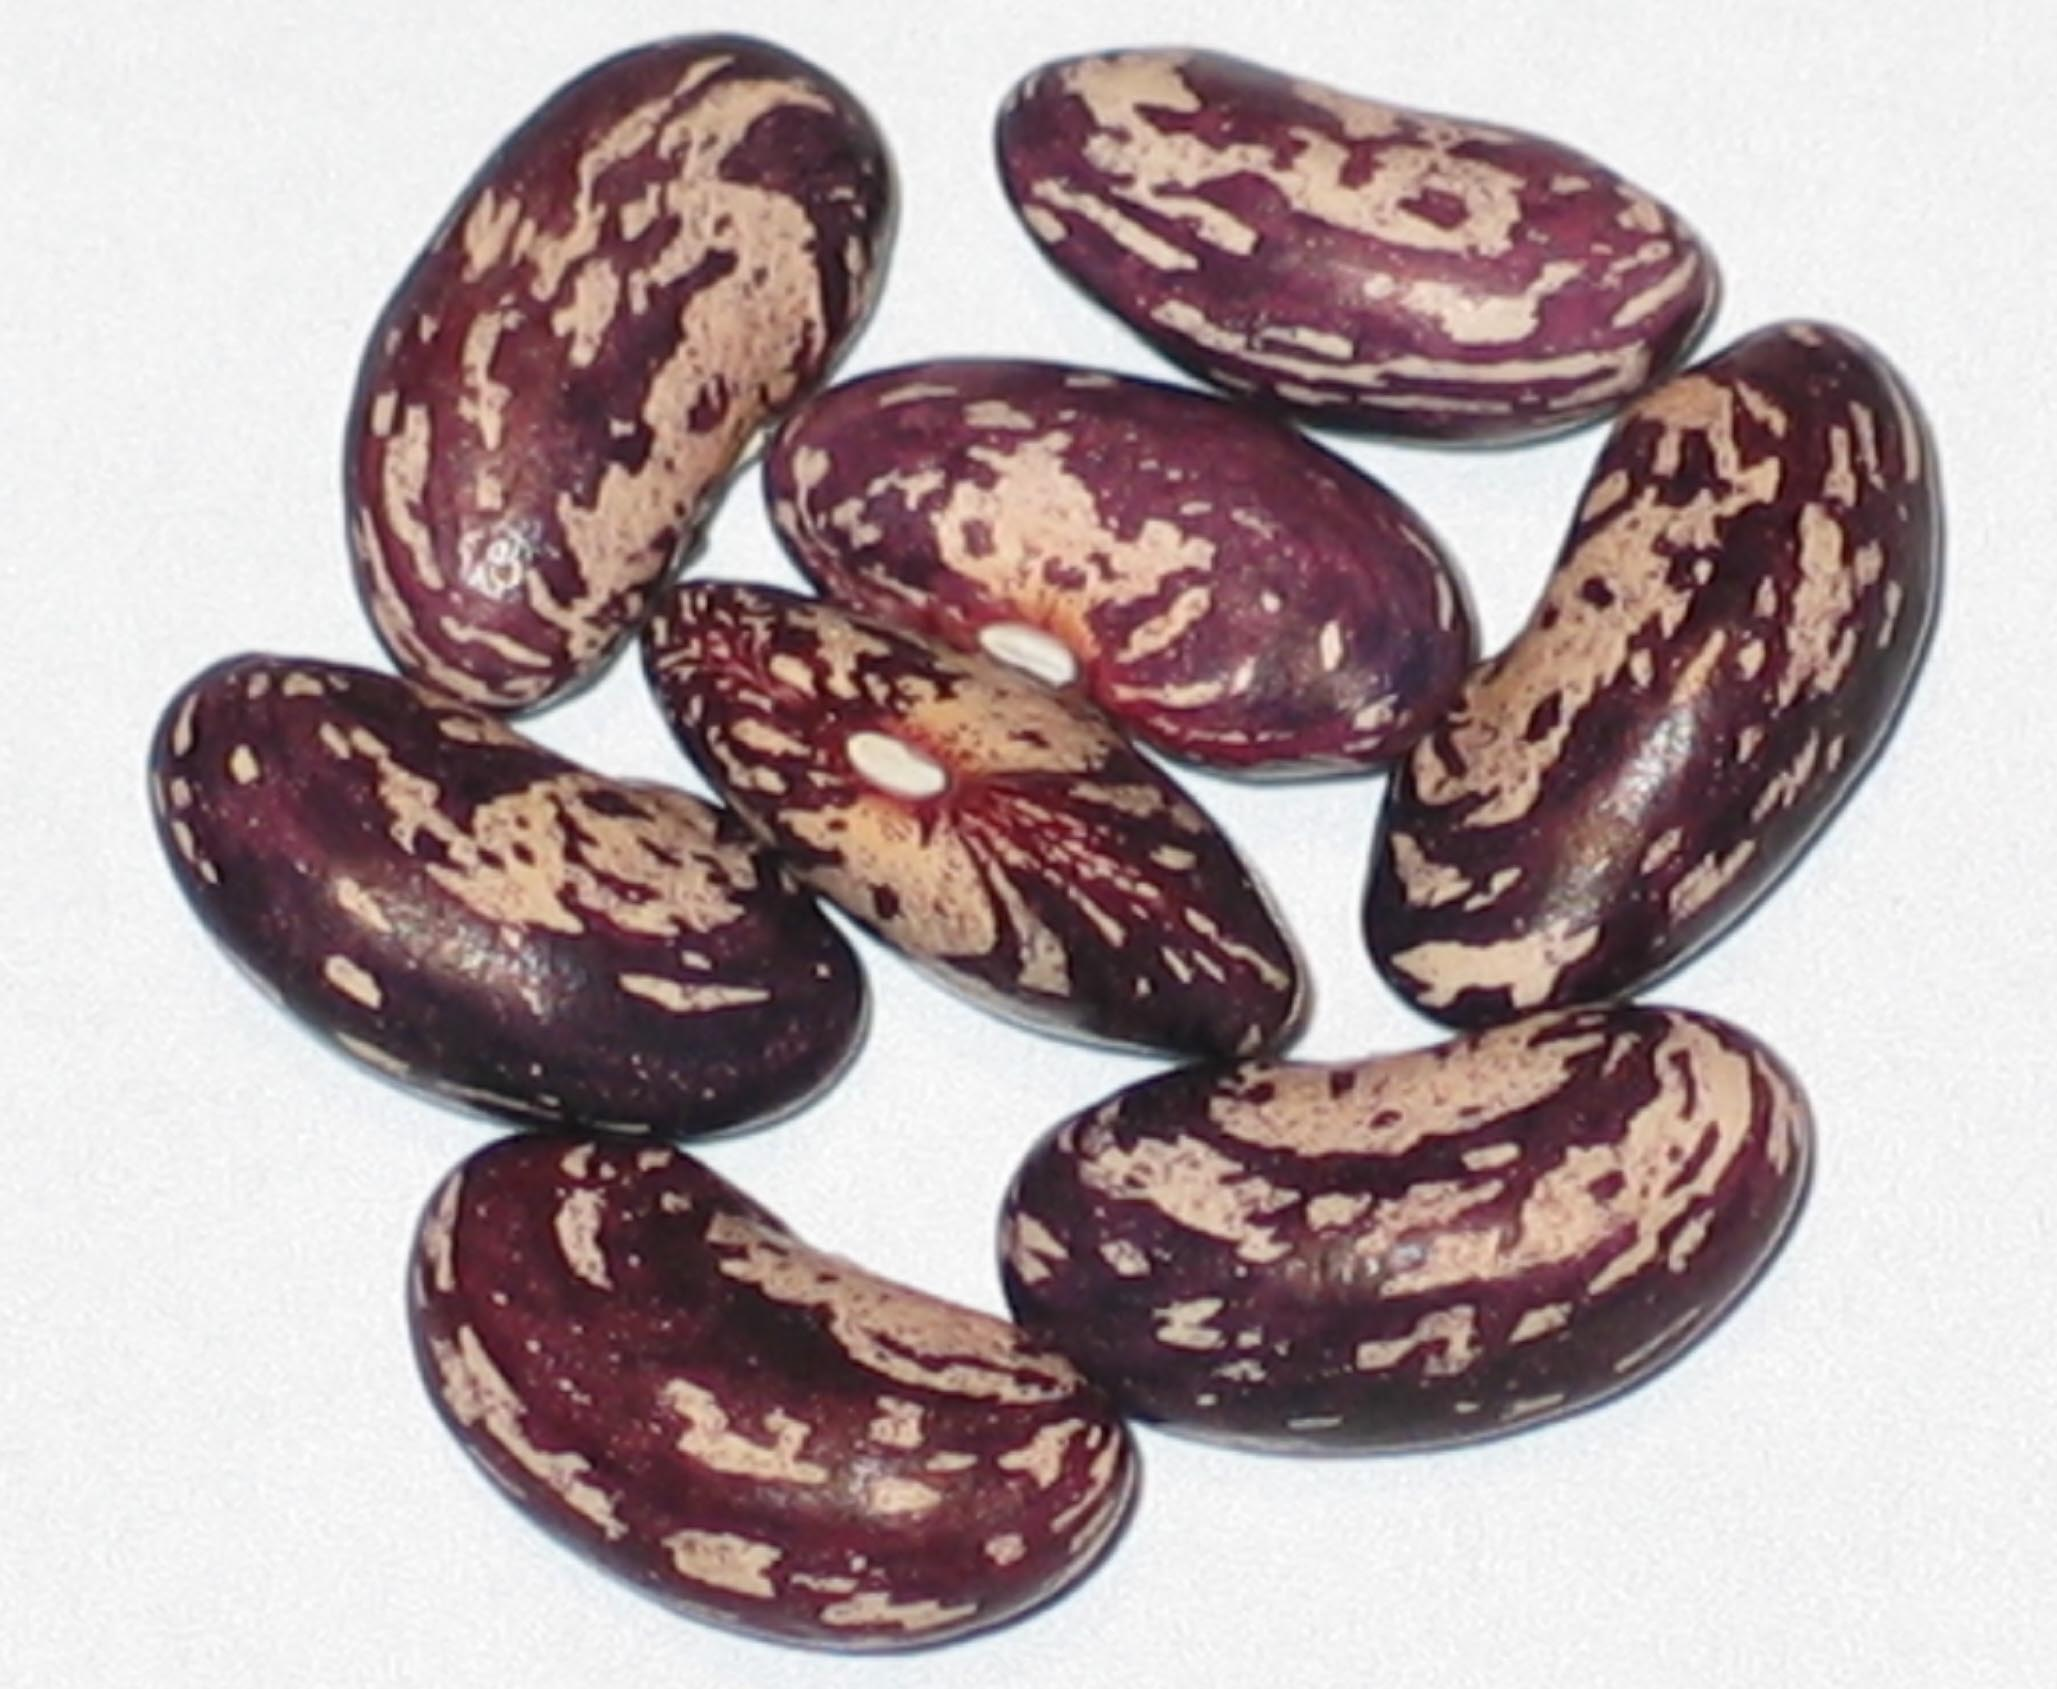 image of Horsehead beans